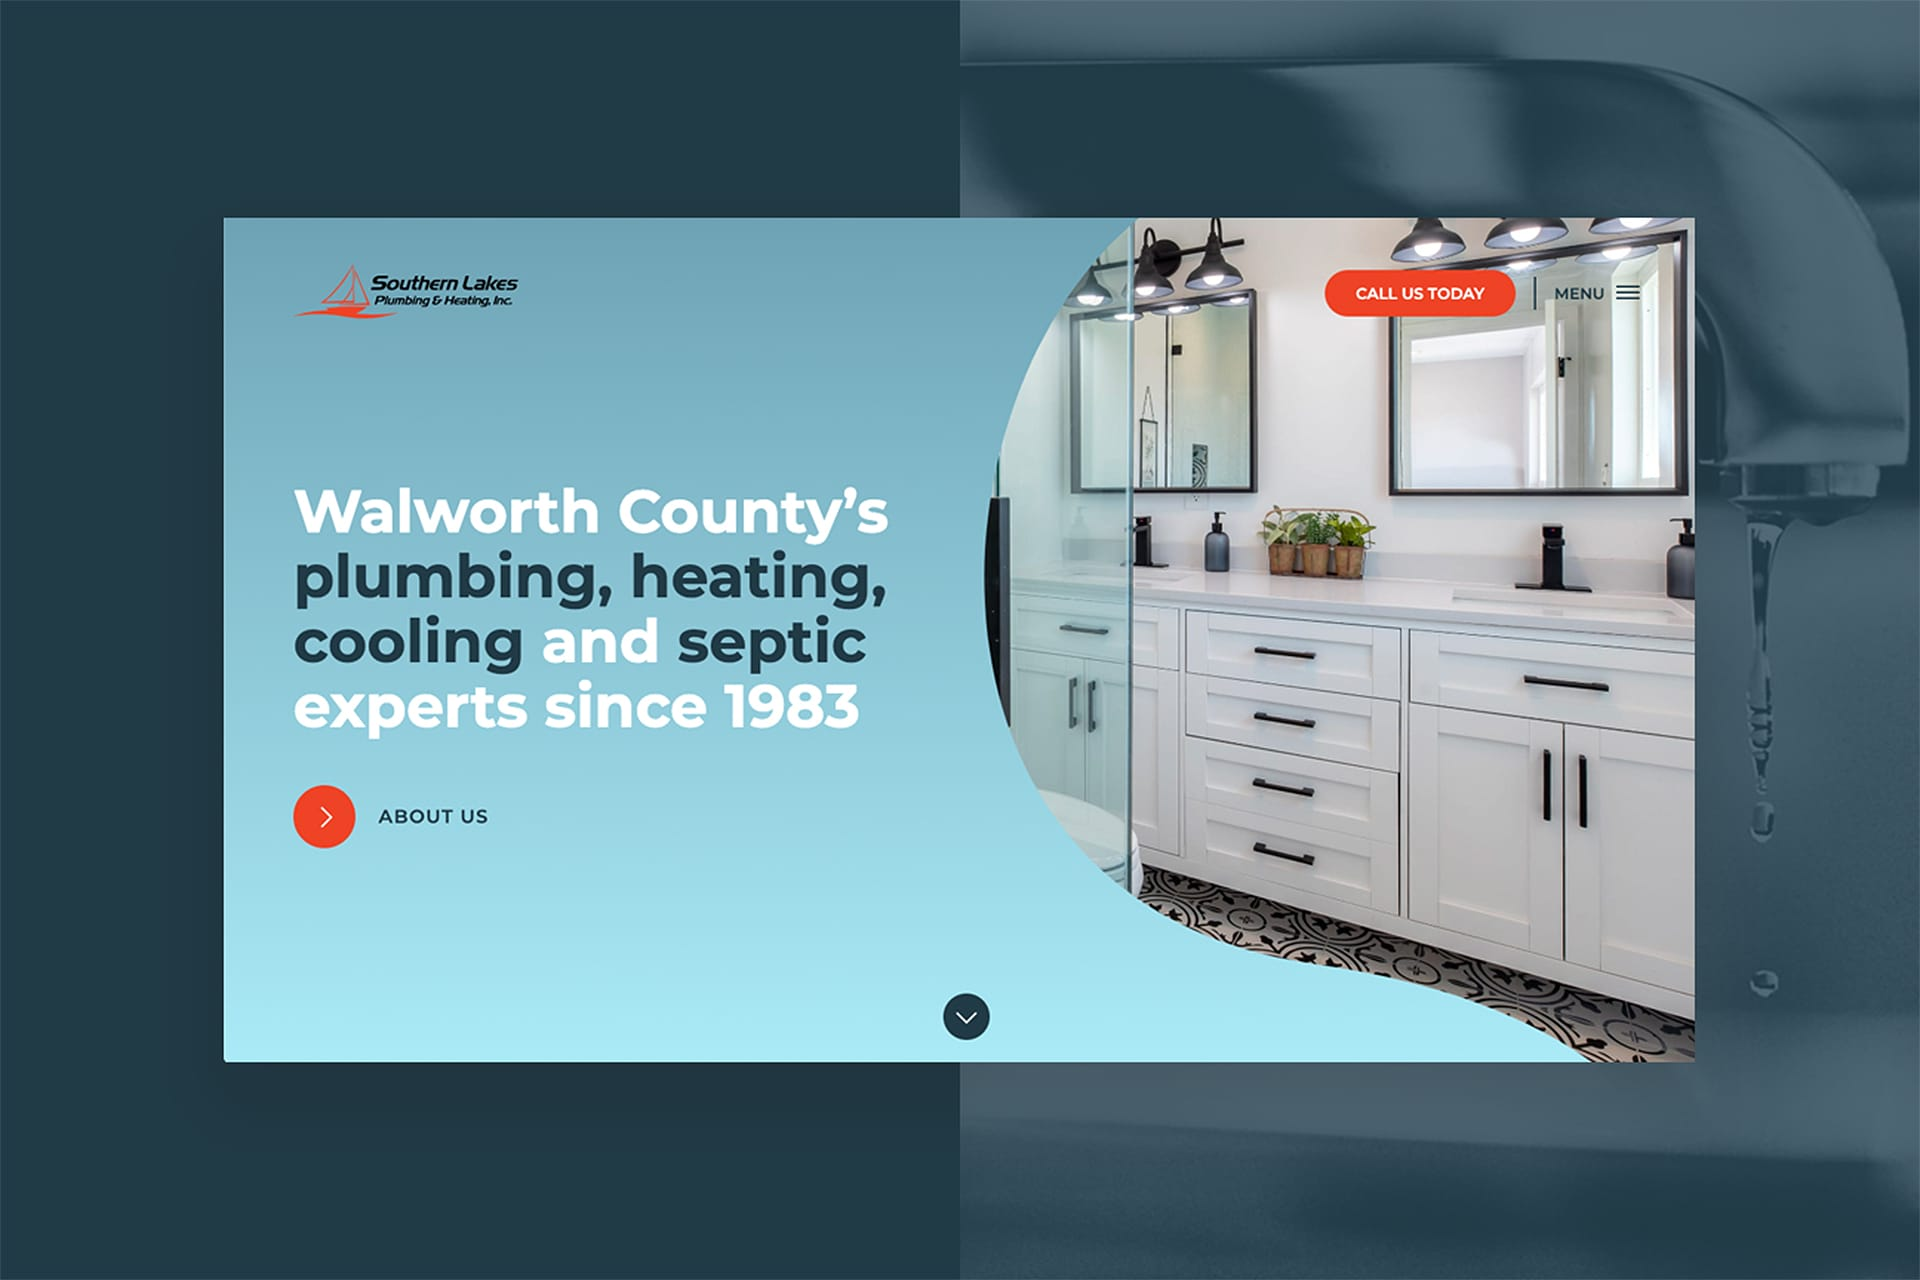 Southern Lakes Plumbing and Heating Homepage